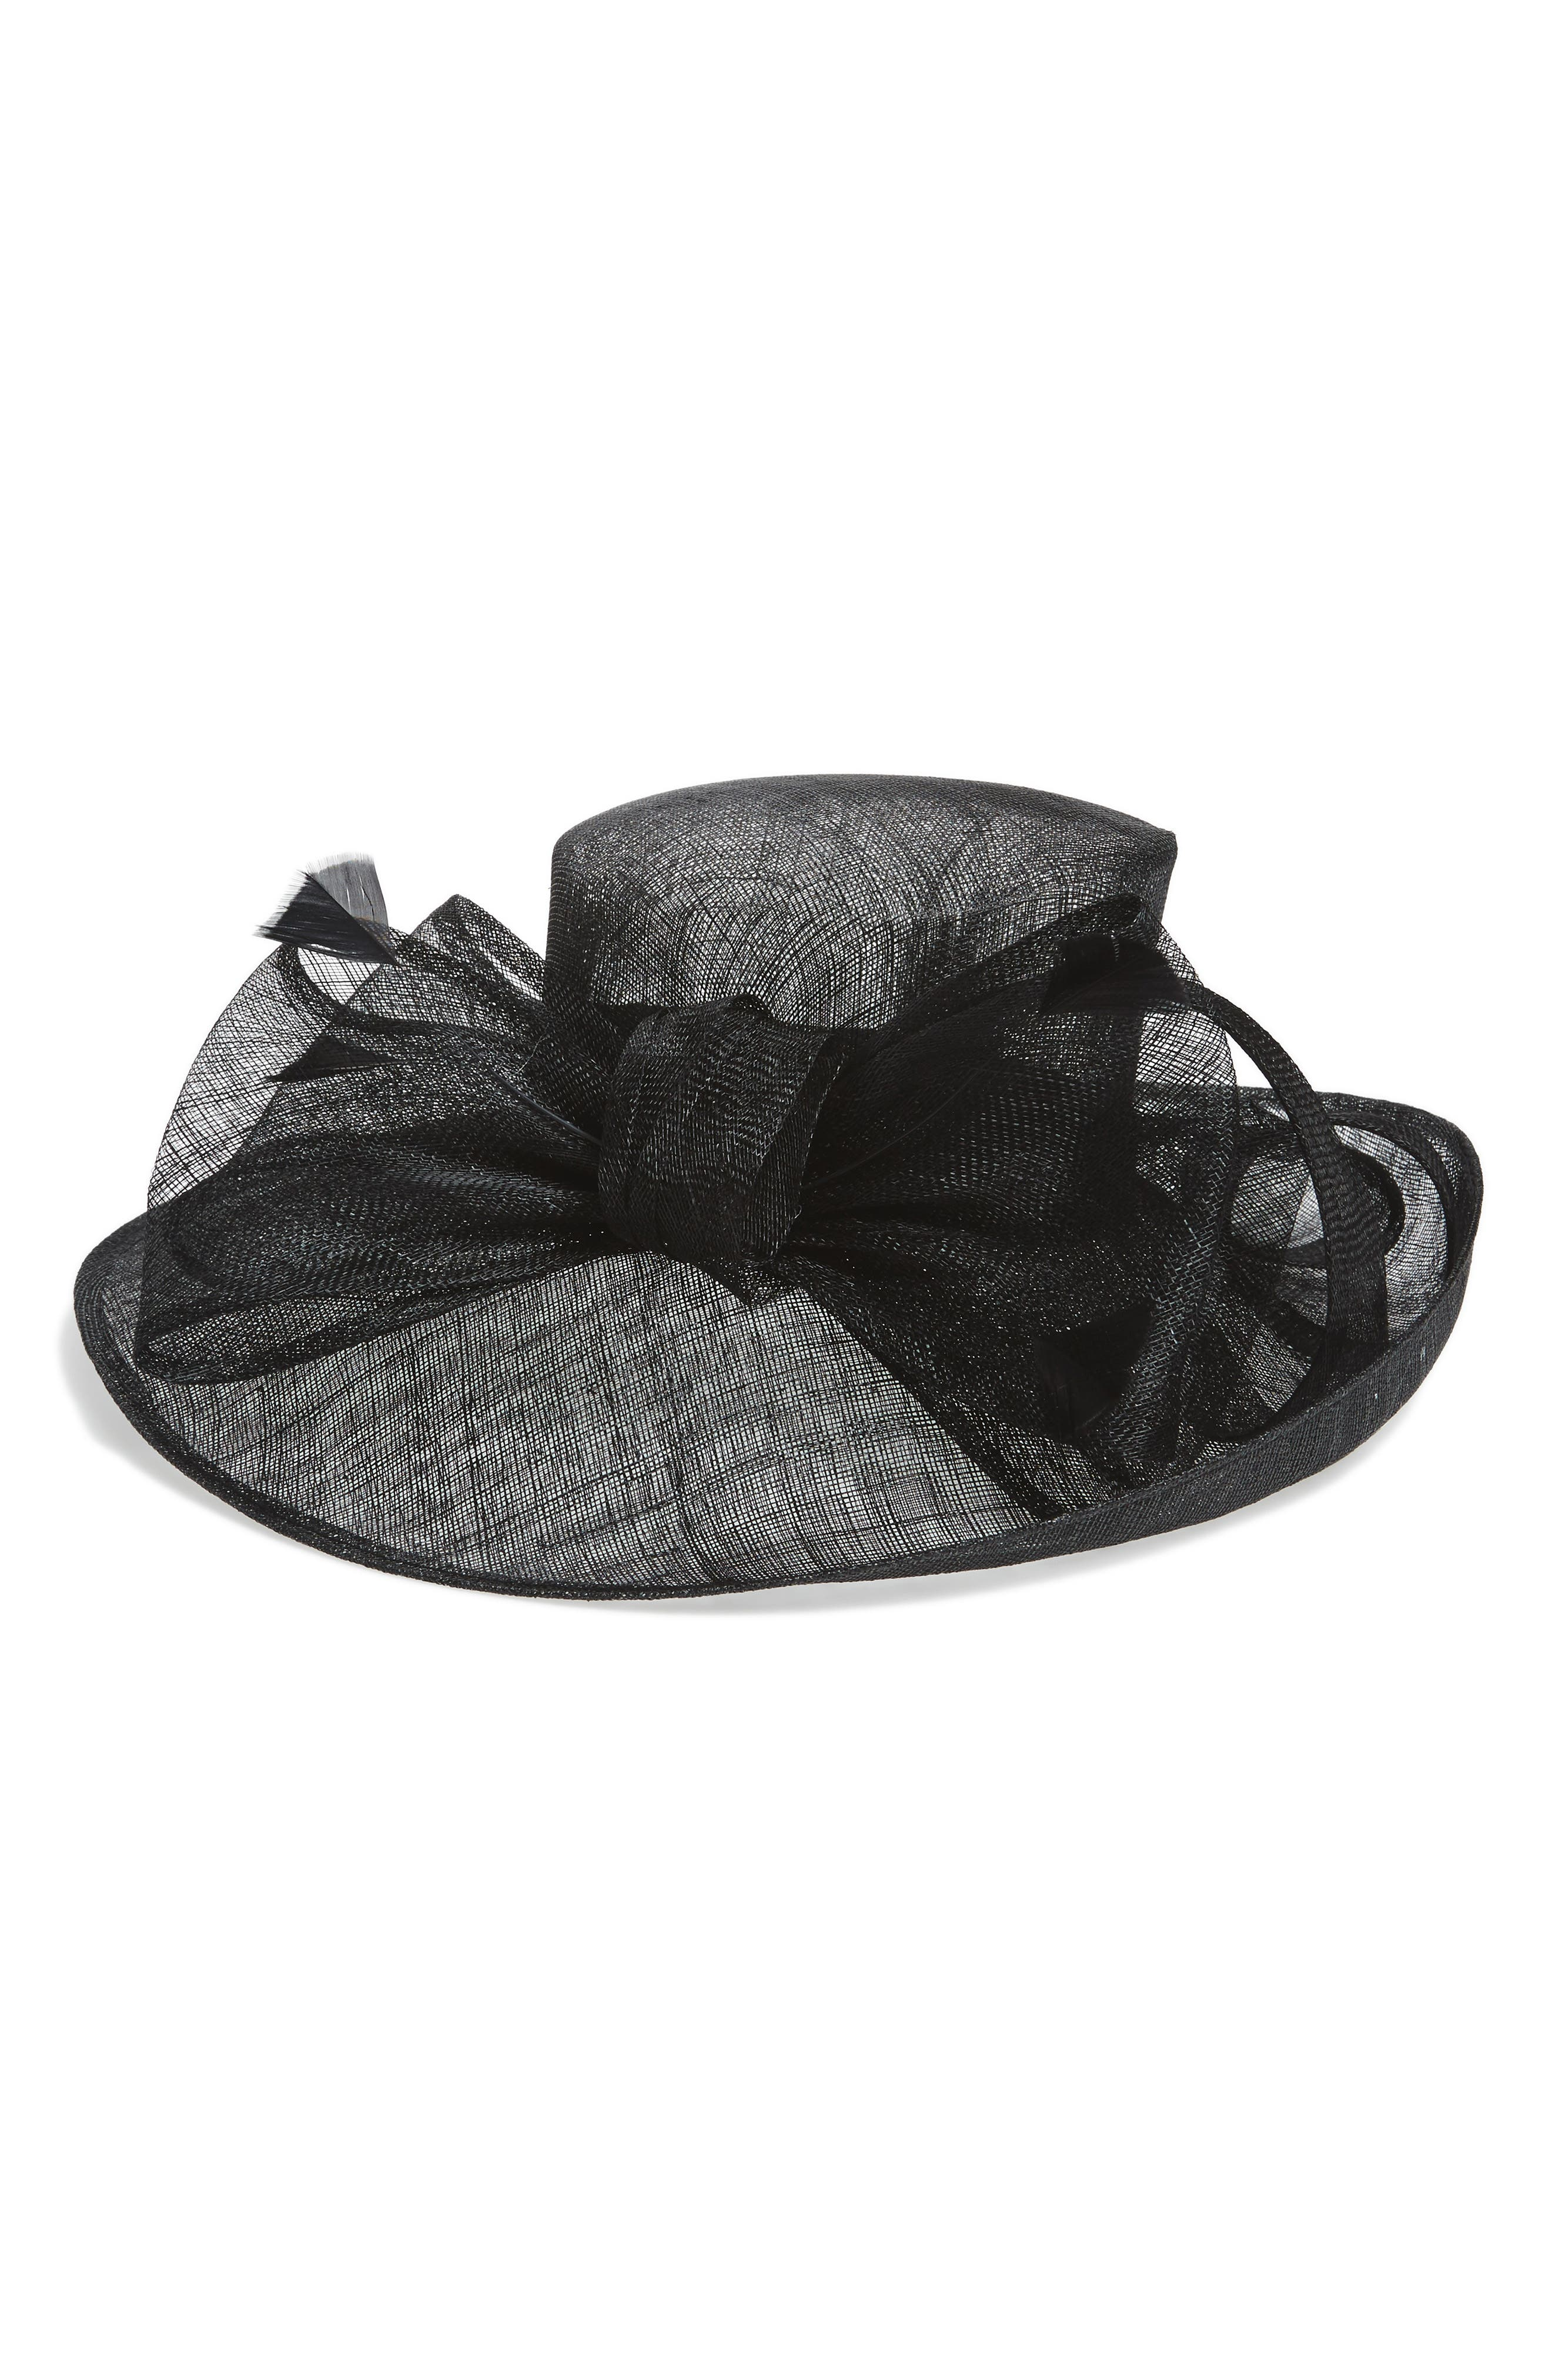 Sinamay Bow Derby Hat,                             Main thumbnail 1, color,                             Black Combo